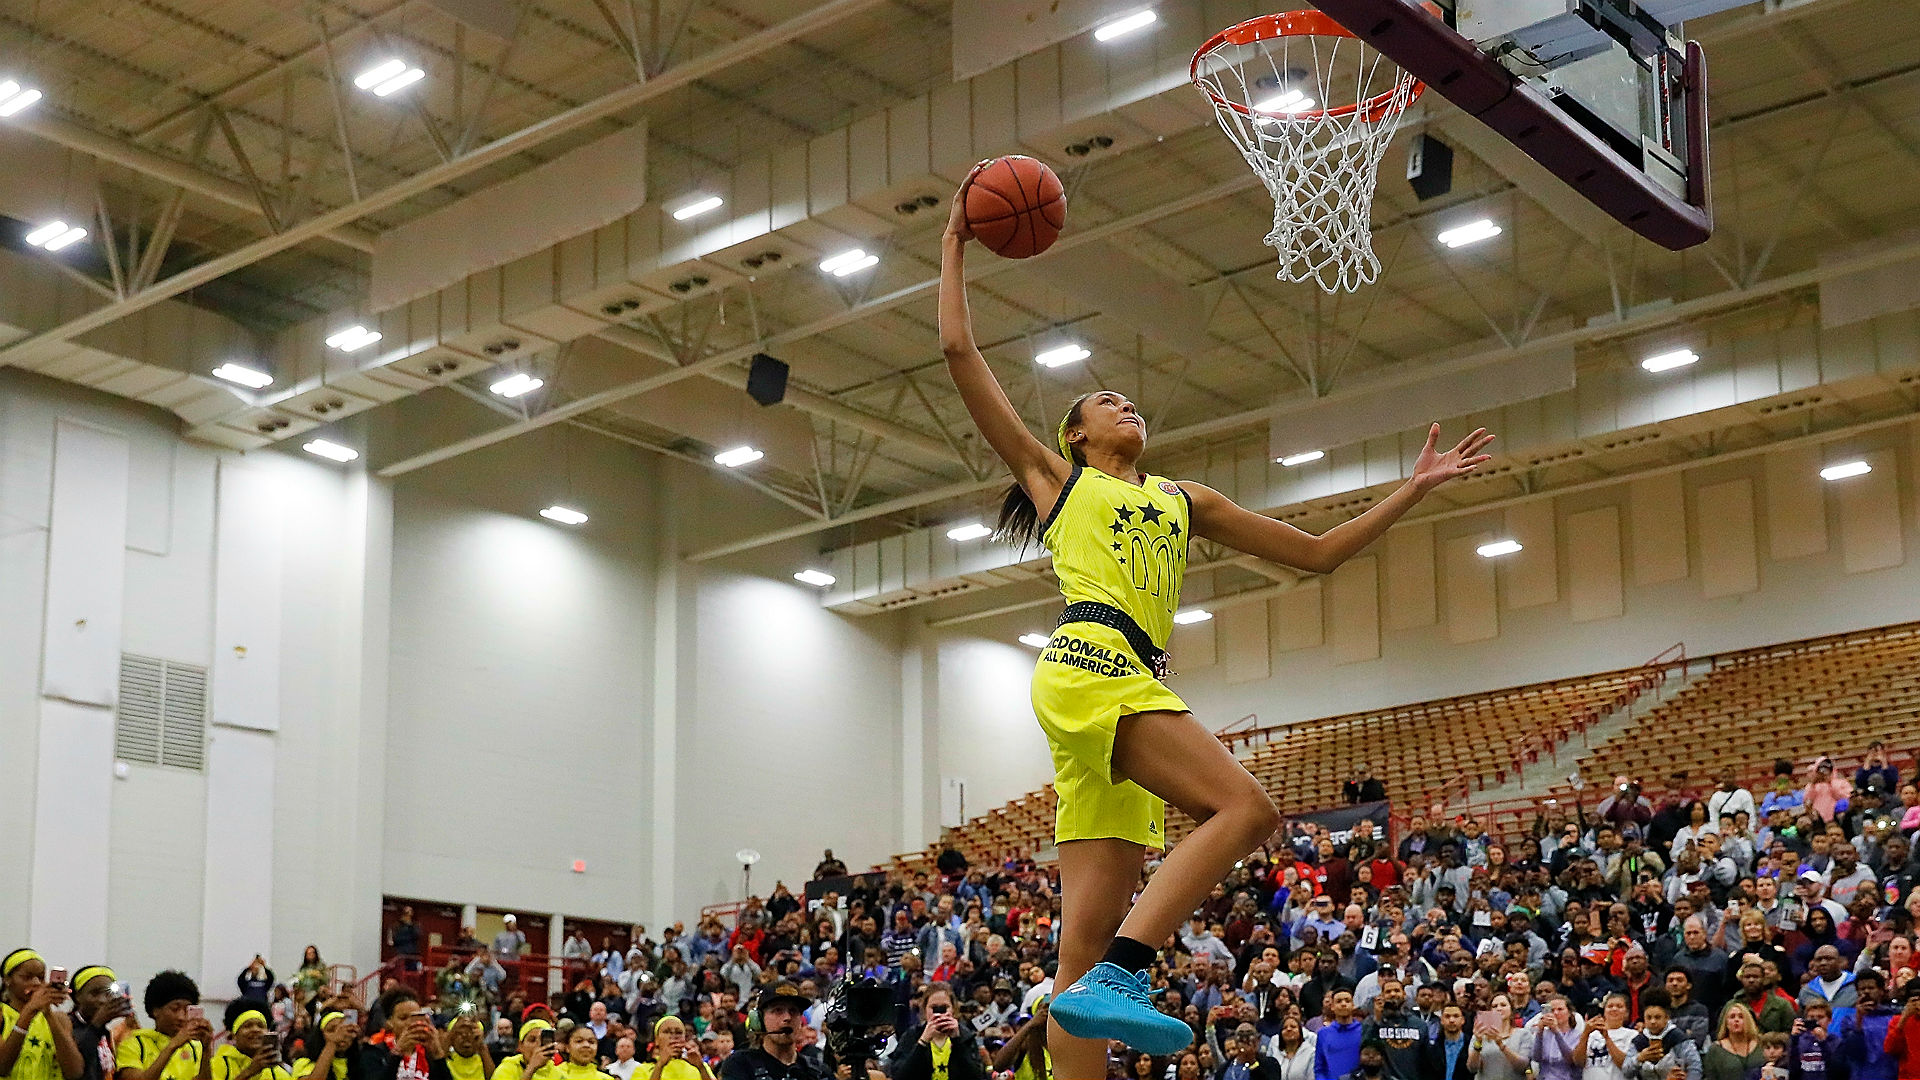 Winder-Barrow girls basketball player throws down flawless slam in dunk contest